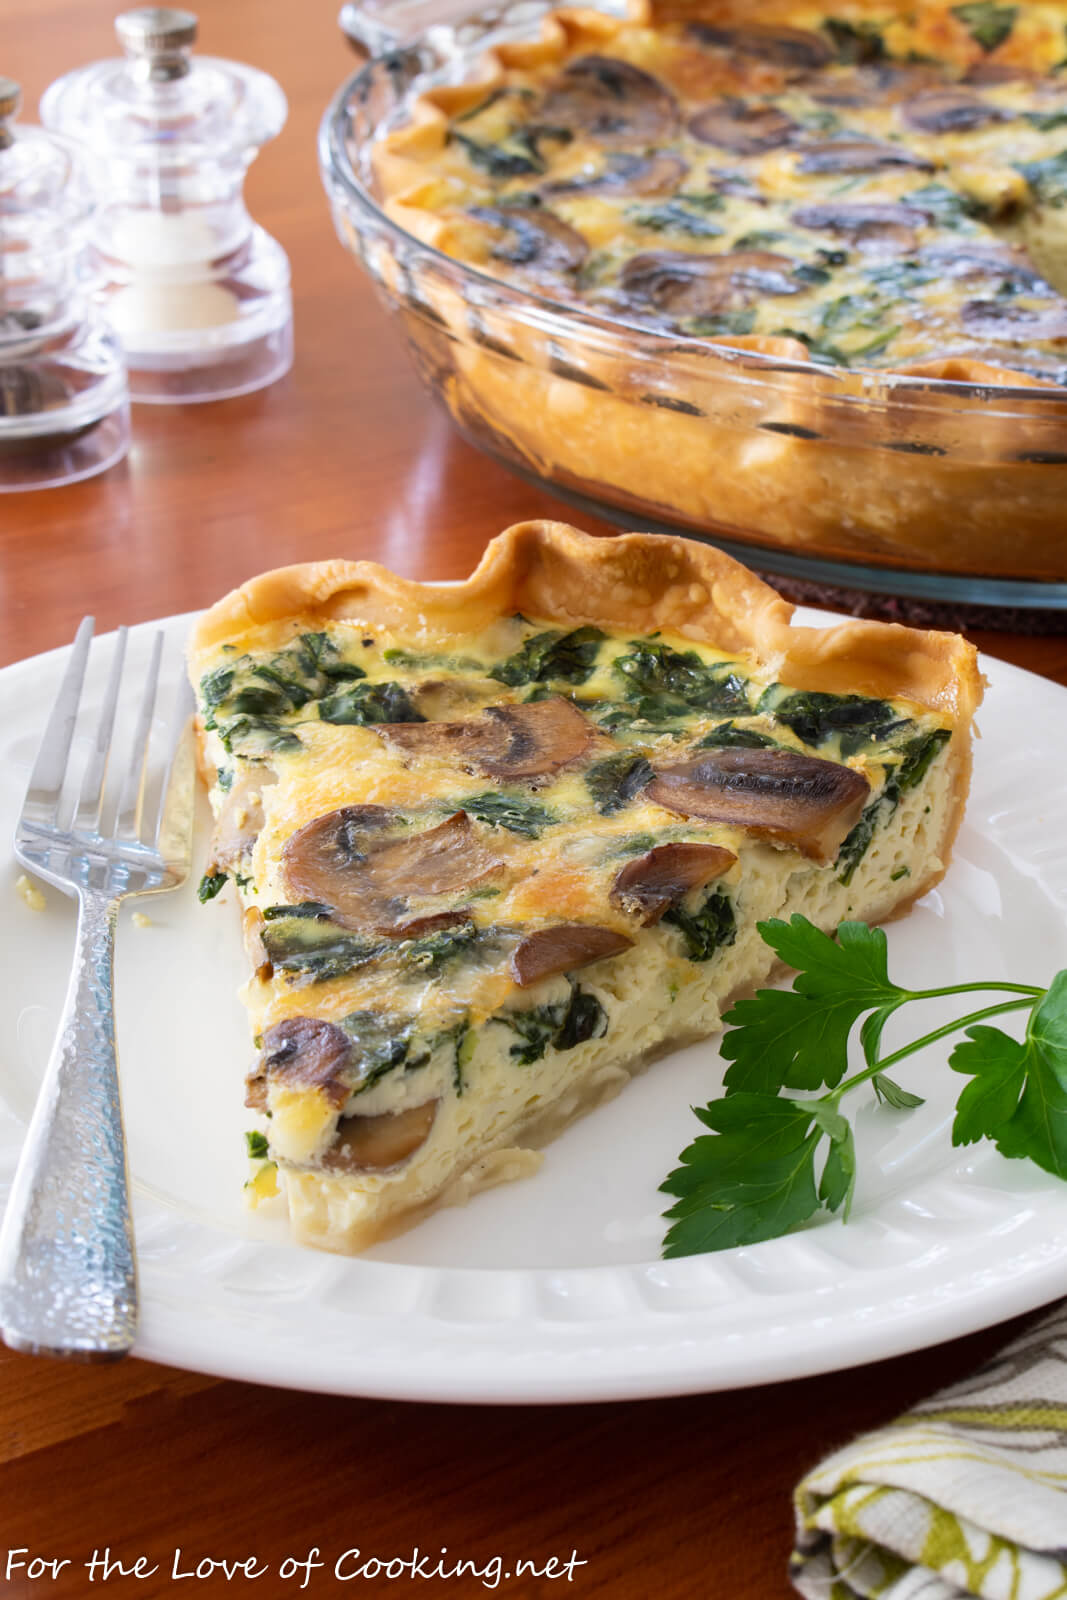 Mushroom And Spinach Quiche With Fontina For The Love Of Cooking